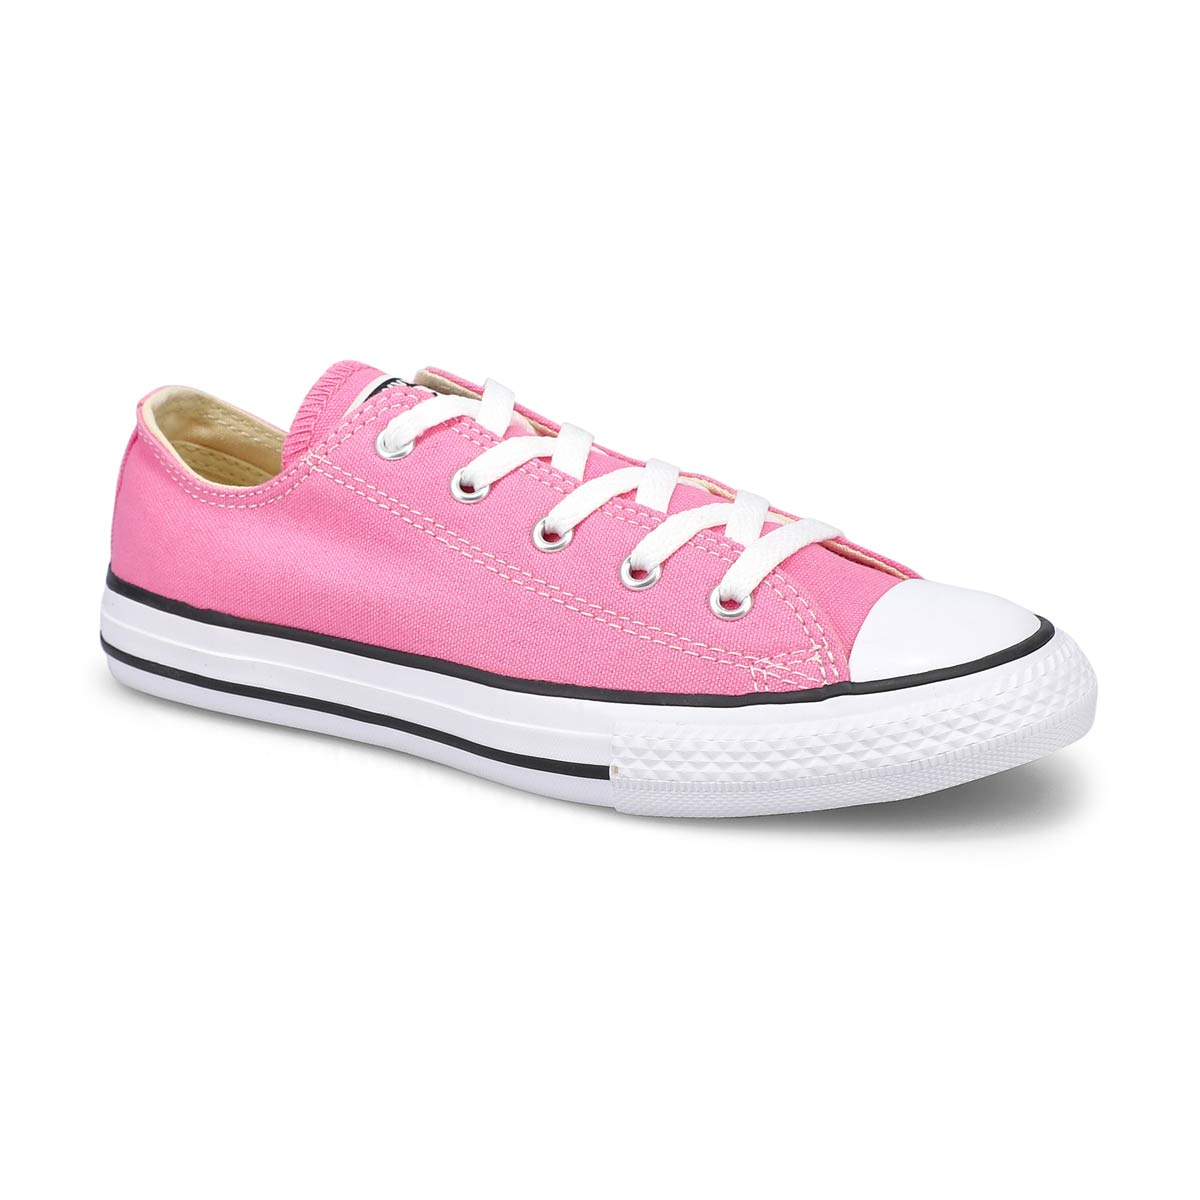 Girls' CHUCK TAYLOR ALL STAR pink sneakers